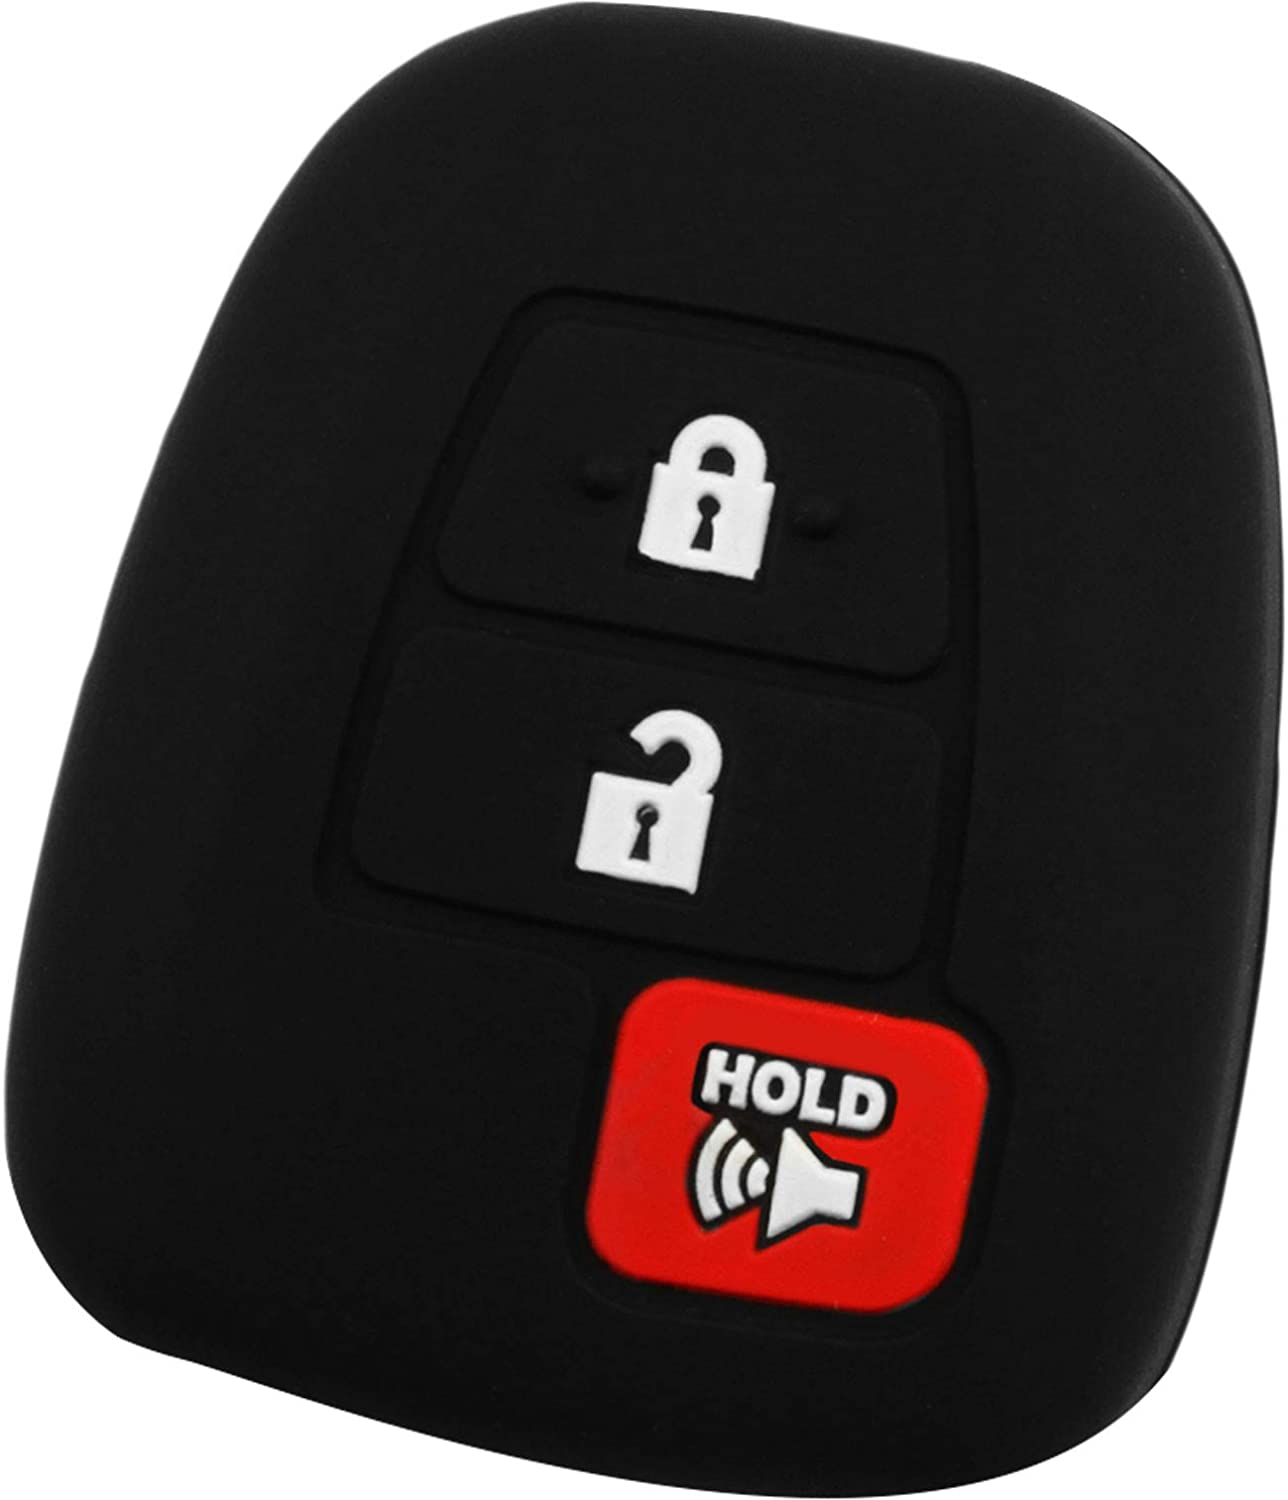 KeyGuardz Keyless Entry Remote Car Key Fob Outer Shell Cover Protective Case for Toyota Camry Corolla Rav4 HYQ12BDM Pack of 2